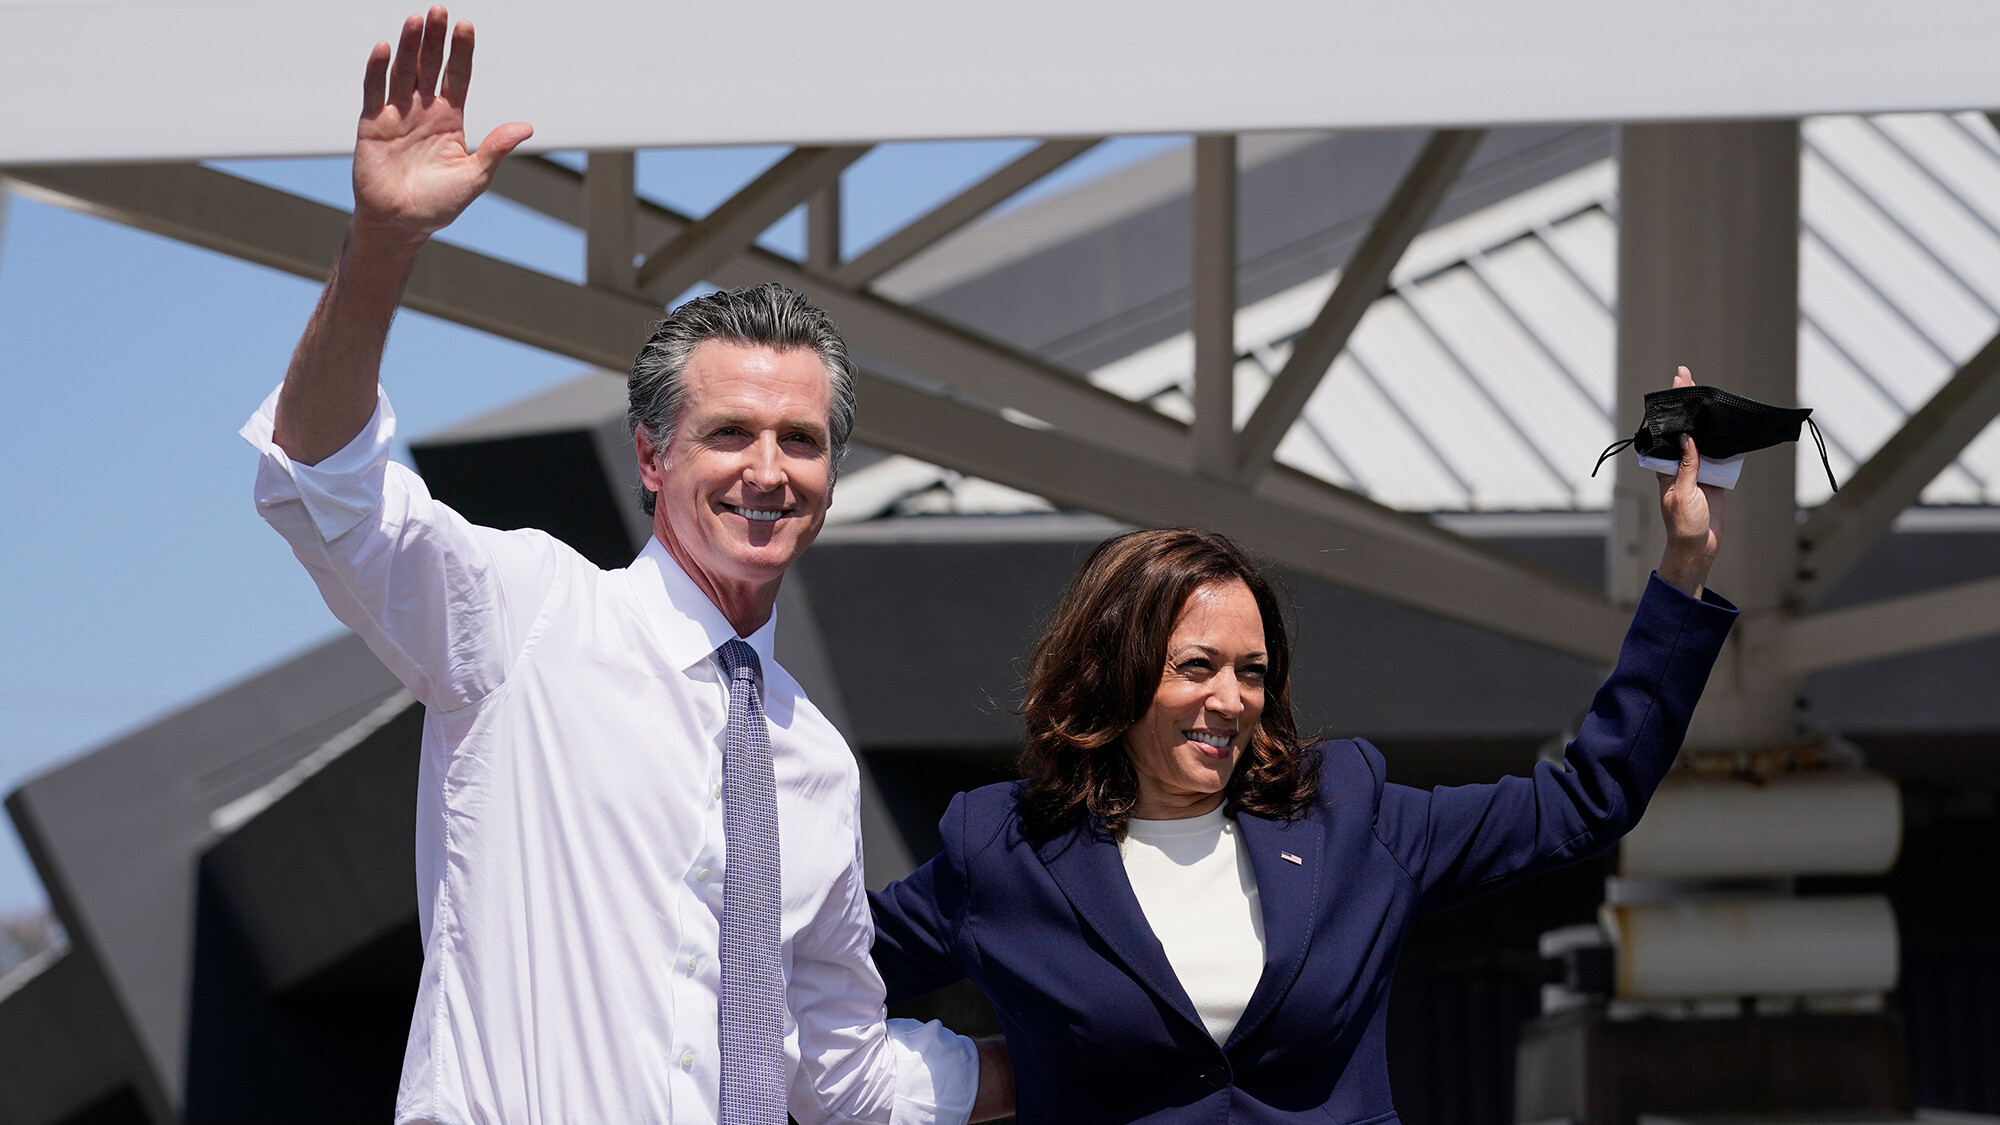 Harris rallies with Newsom to send a message to female voters in final days of California recall campaign